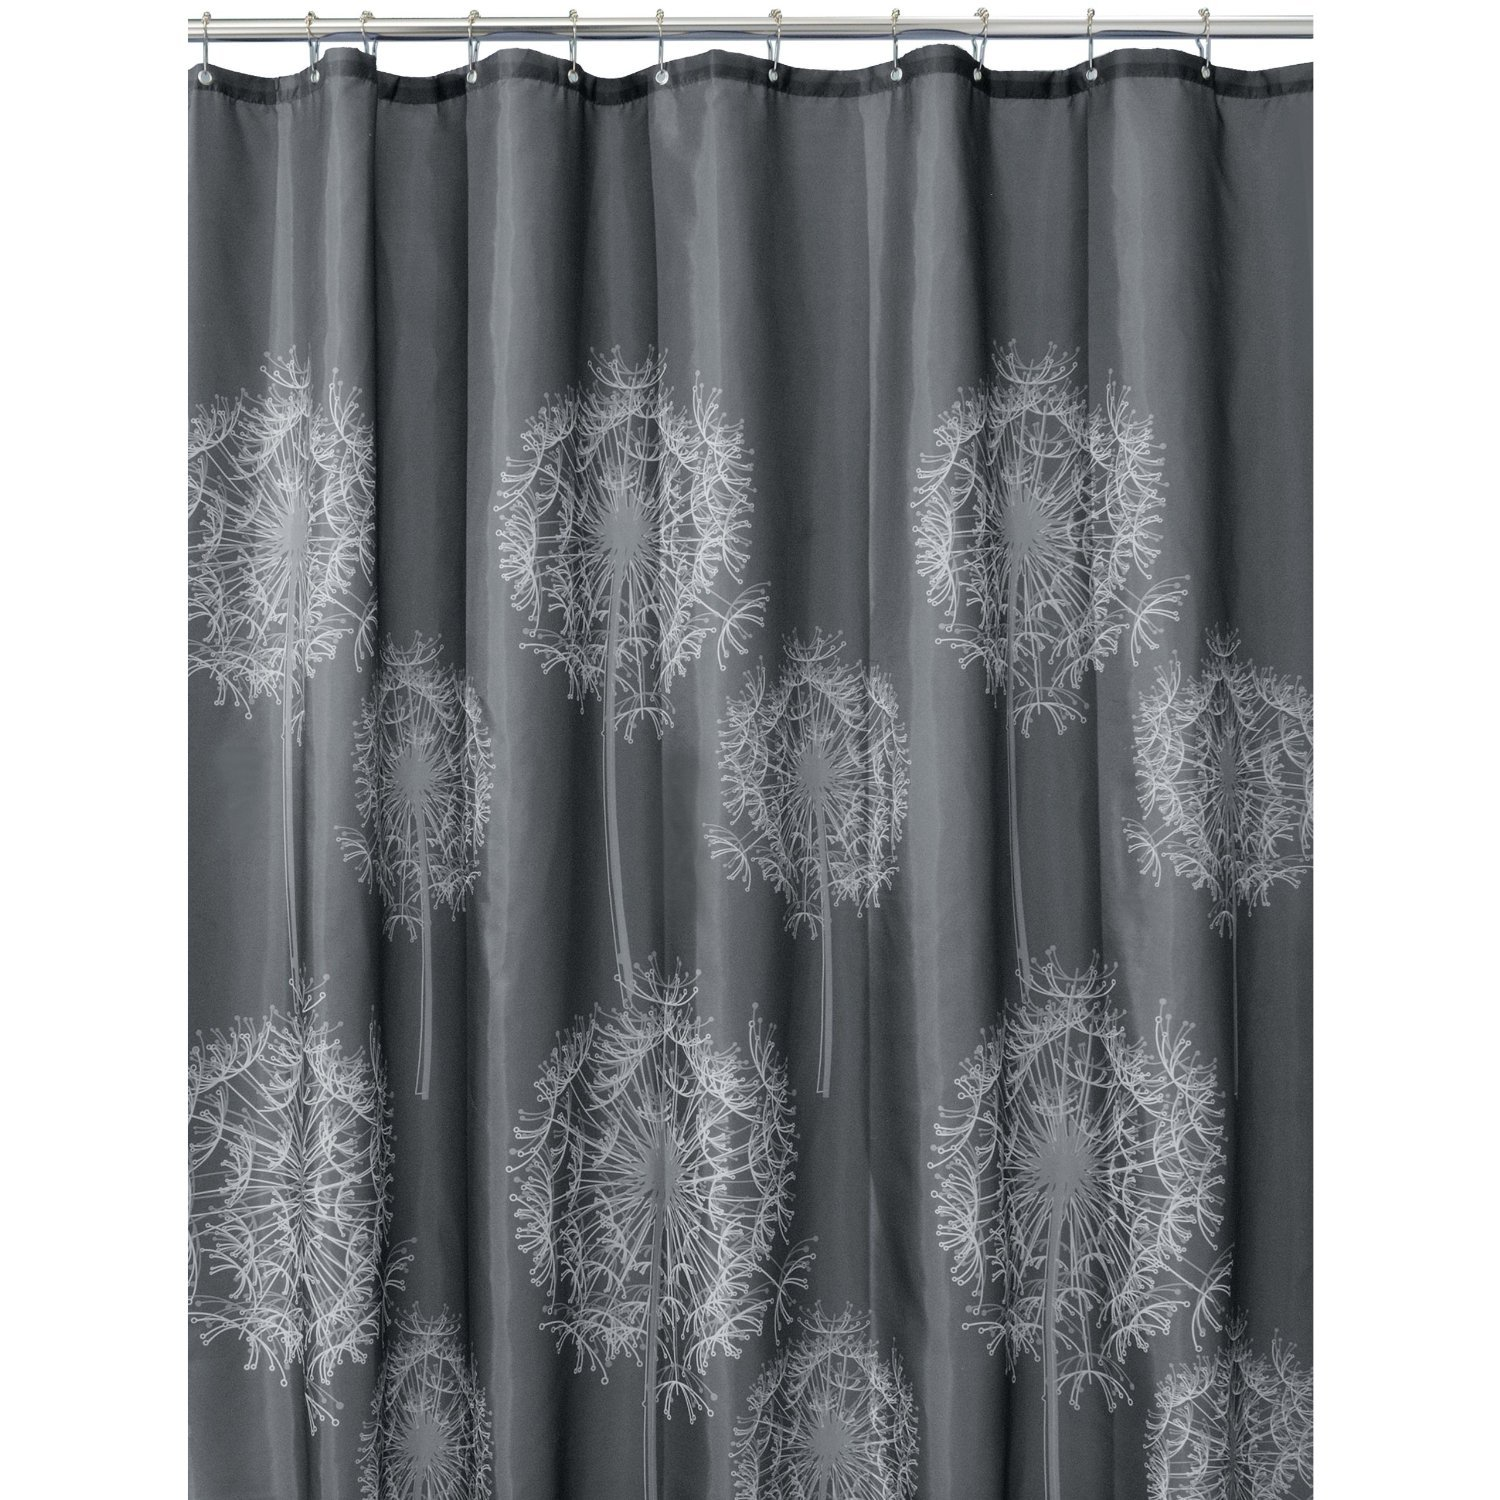 for white awesome gray shower seersucker black design bathroom inspiring charcoal u and concept curtains style grey nsyd curtain pink